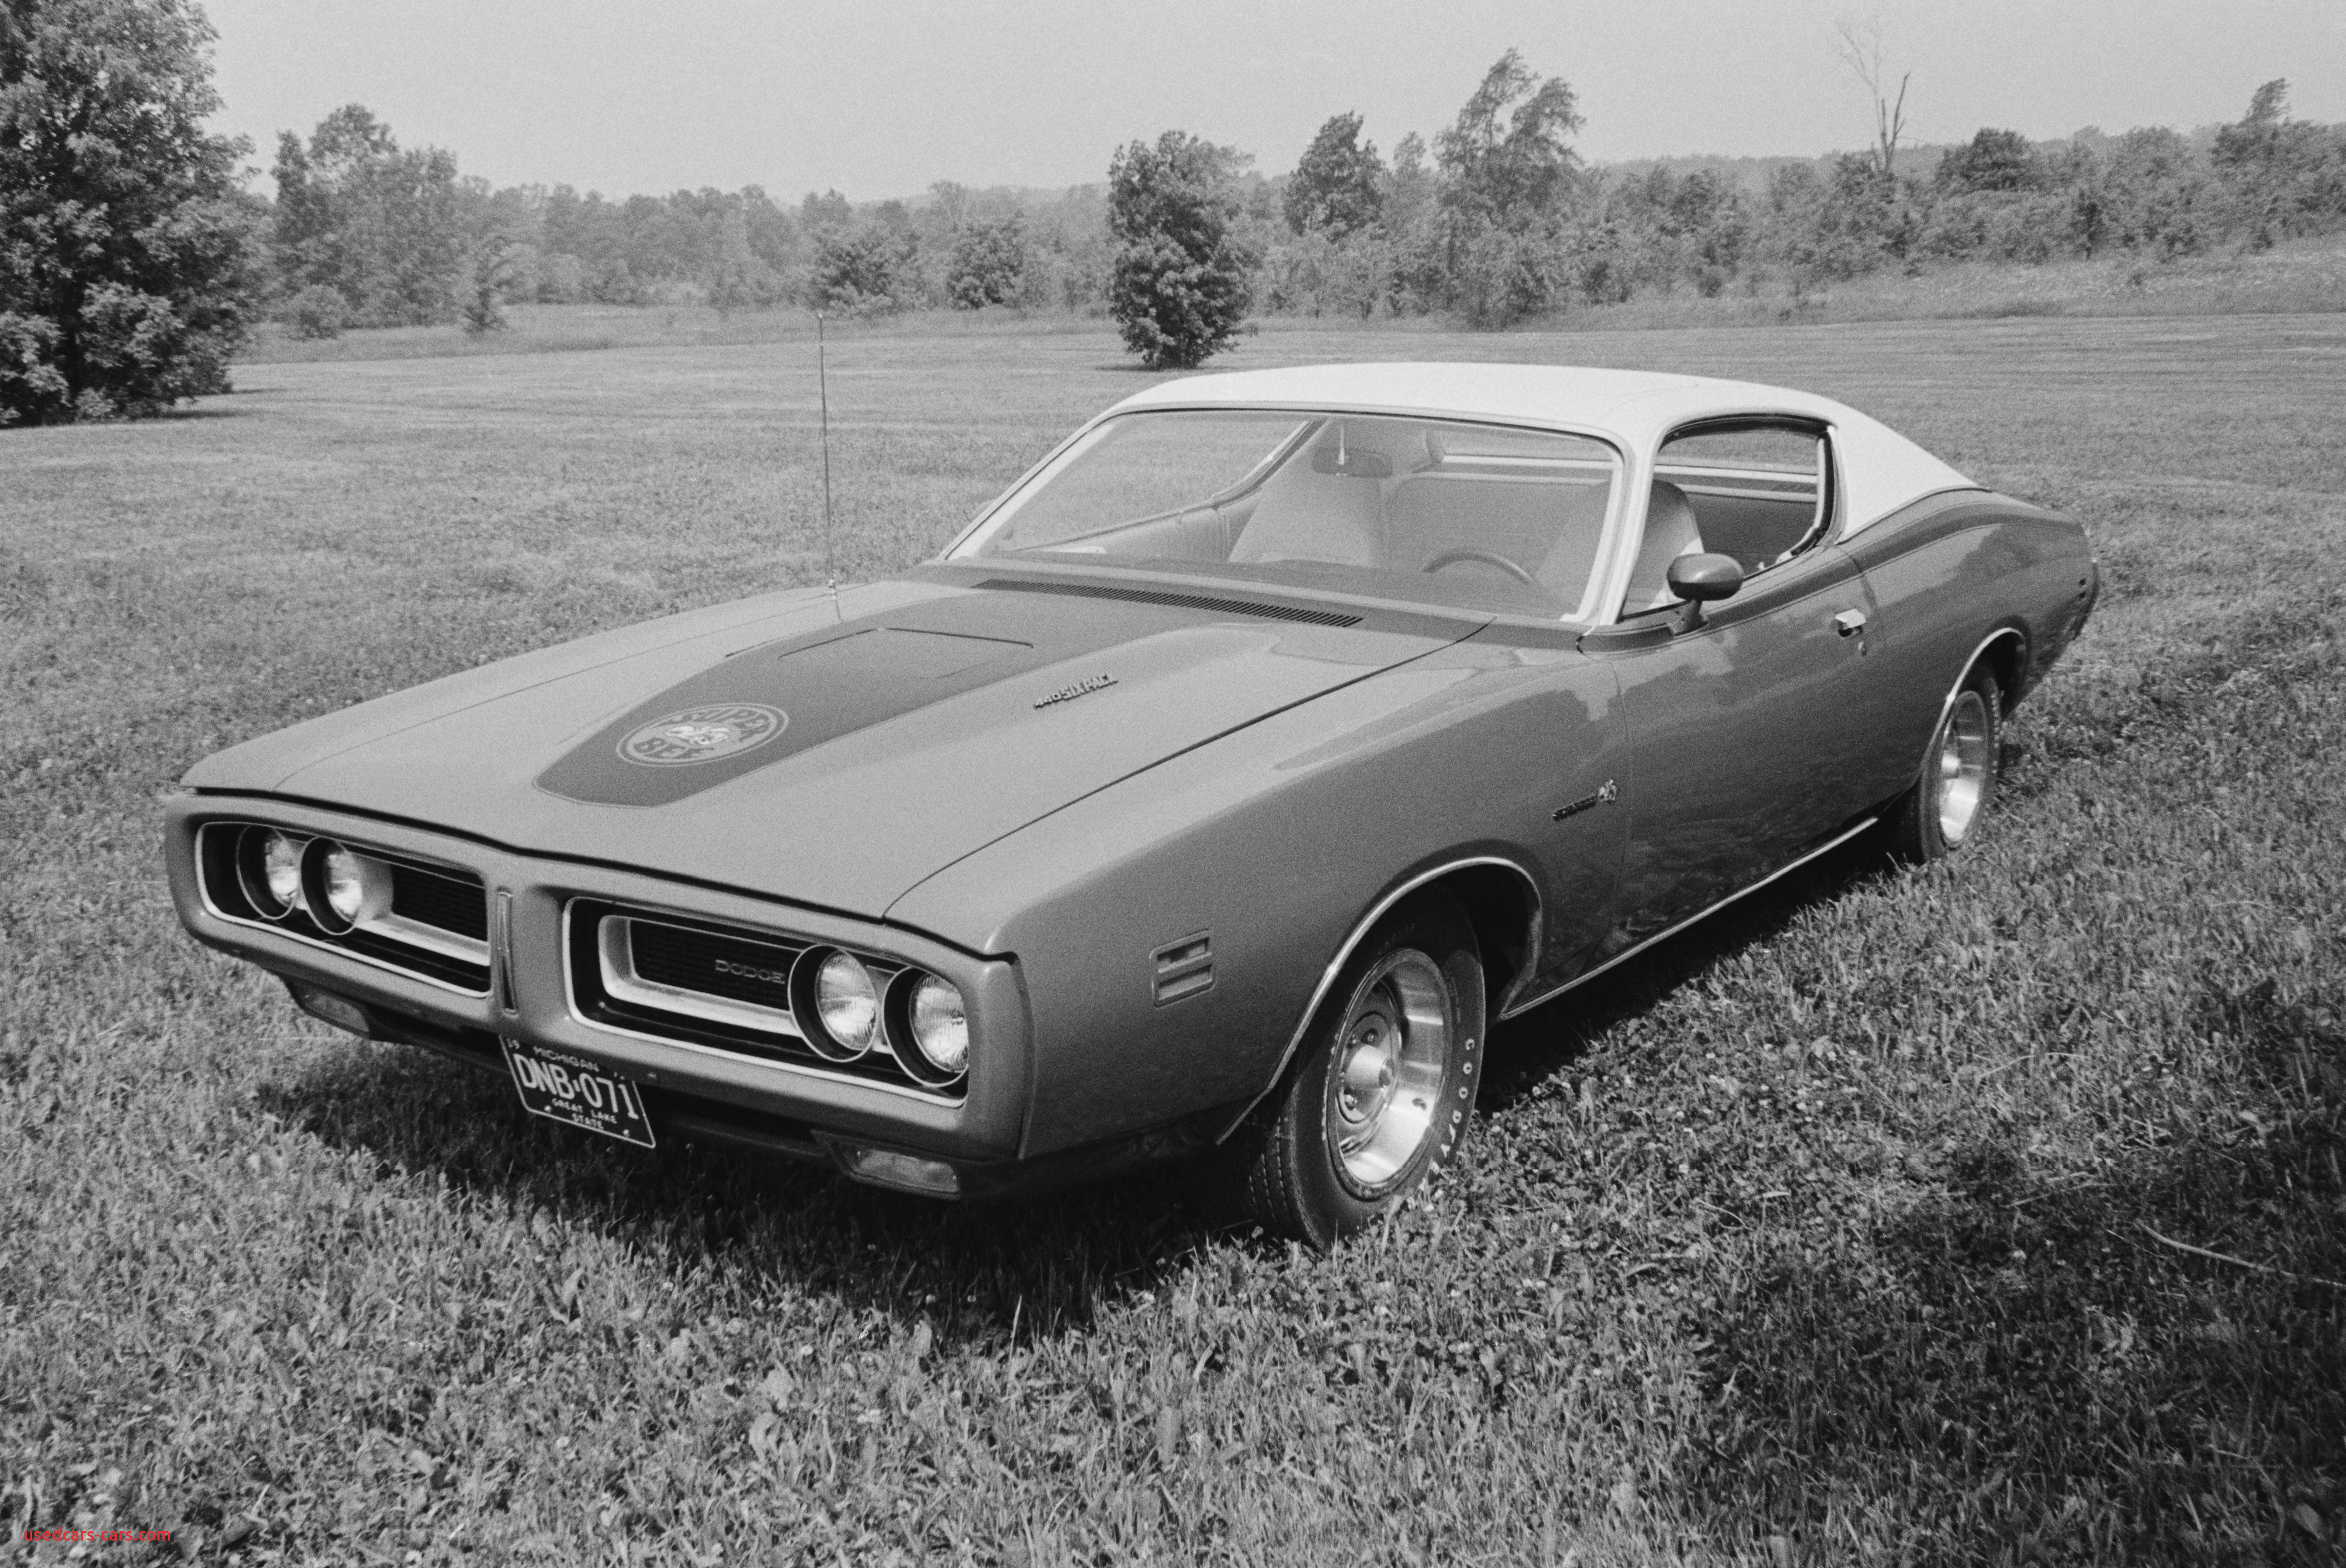 Dodge 2016 Beautiful 1971 Dodge Charger 500 Super Bee 440 Six Pack Wh23